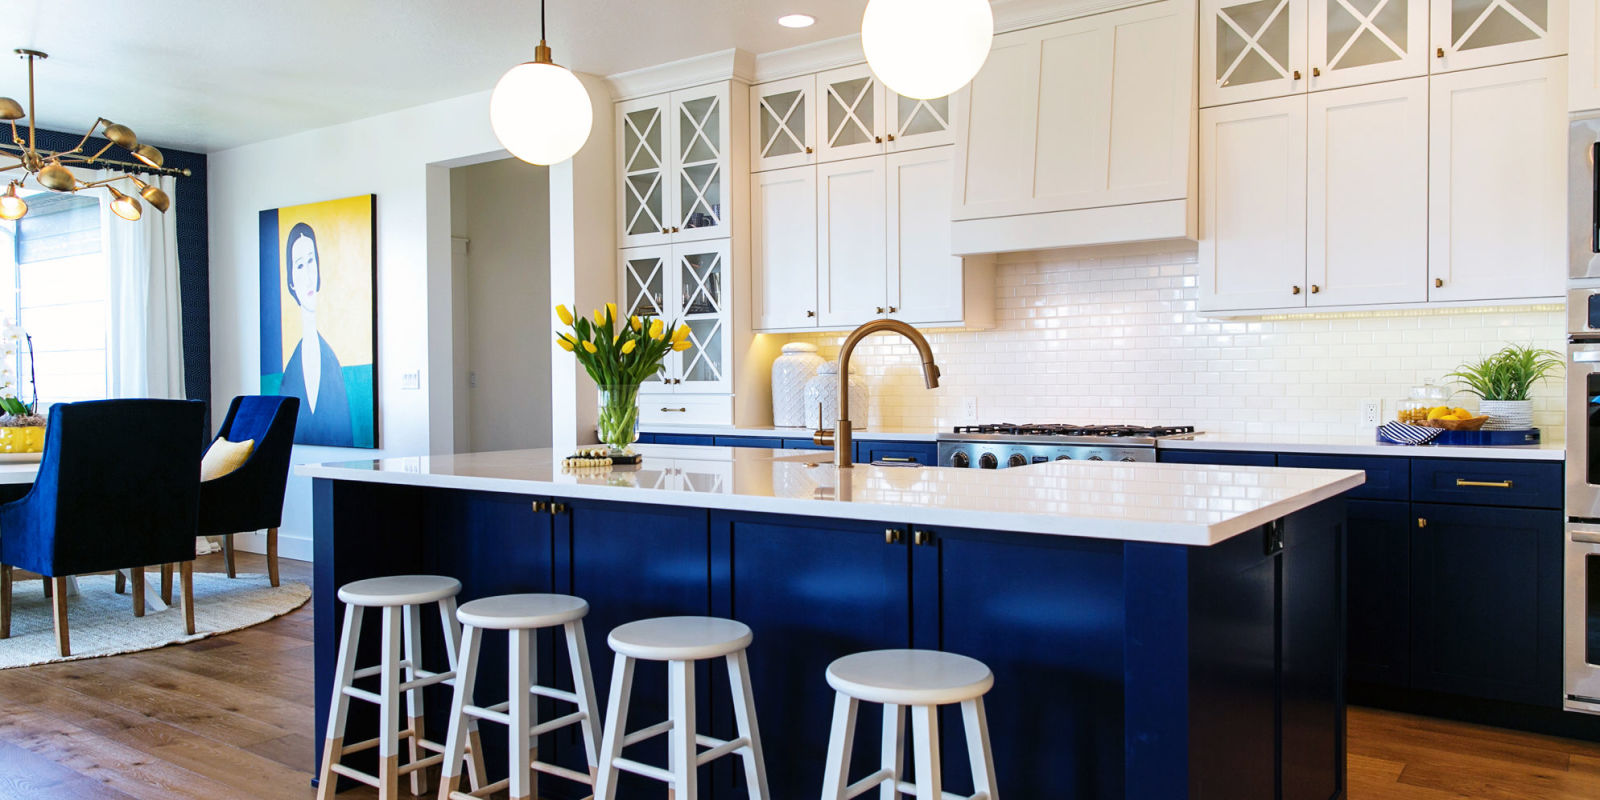 Creative Ideas for Kitchen Finishes - Beautiful Kitchen Materials